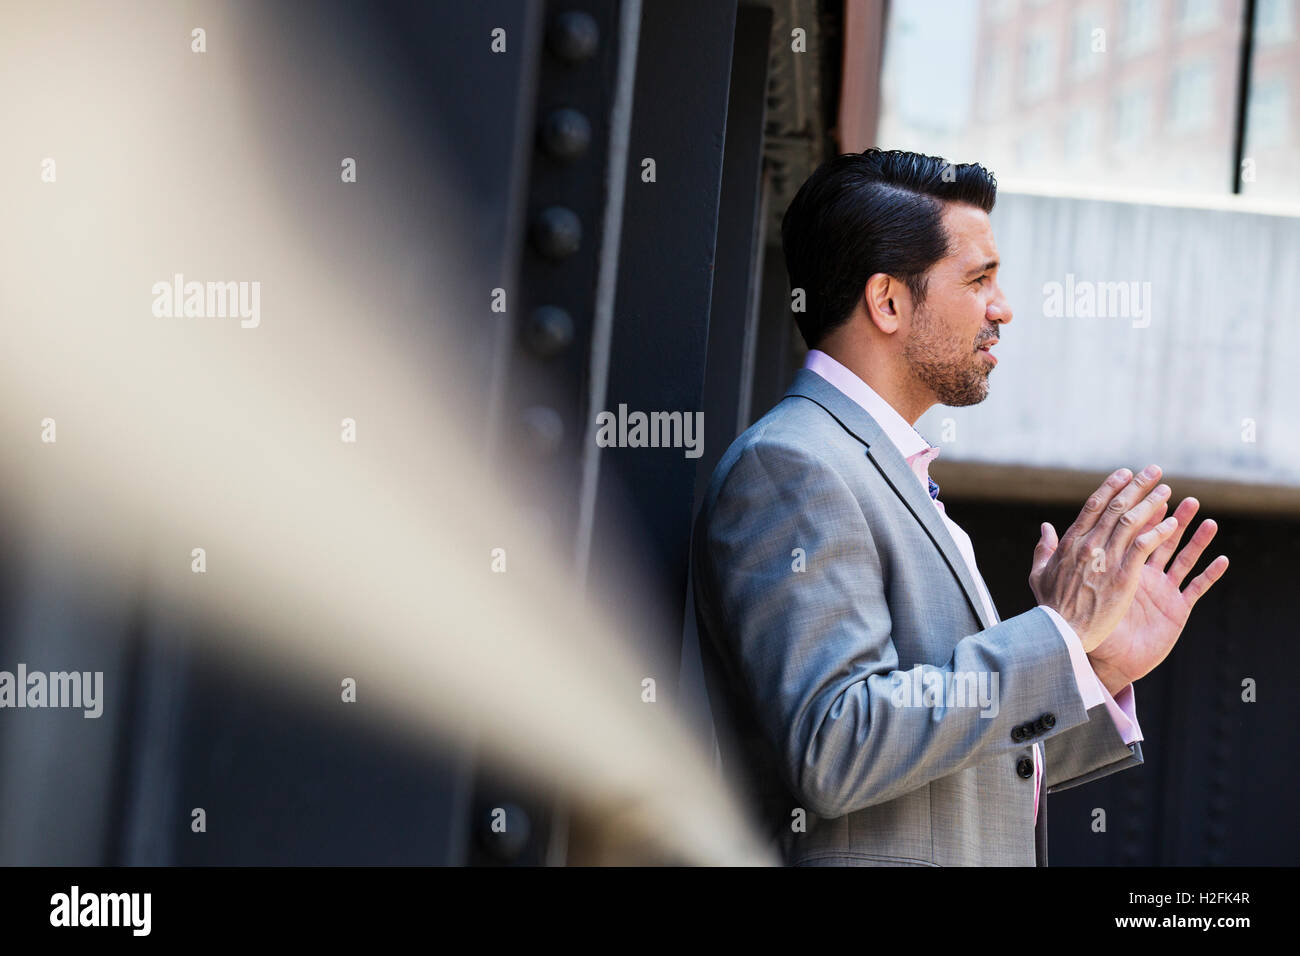 Businessman wearing a grey suit standing outdoors, talking and gesturing with his hands raised. - Stock Image